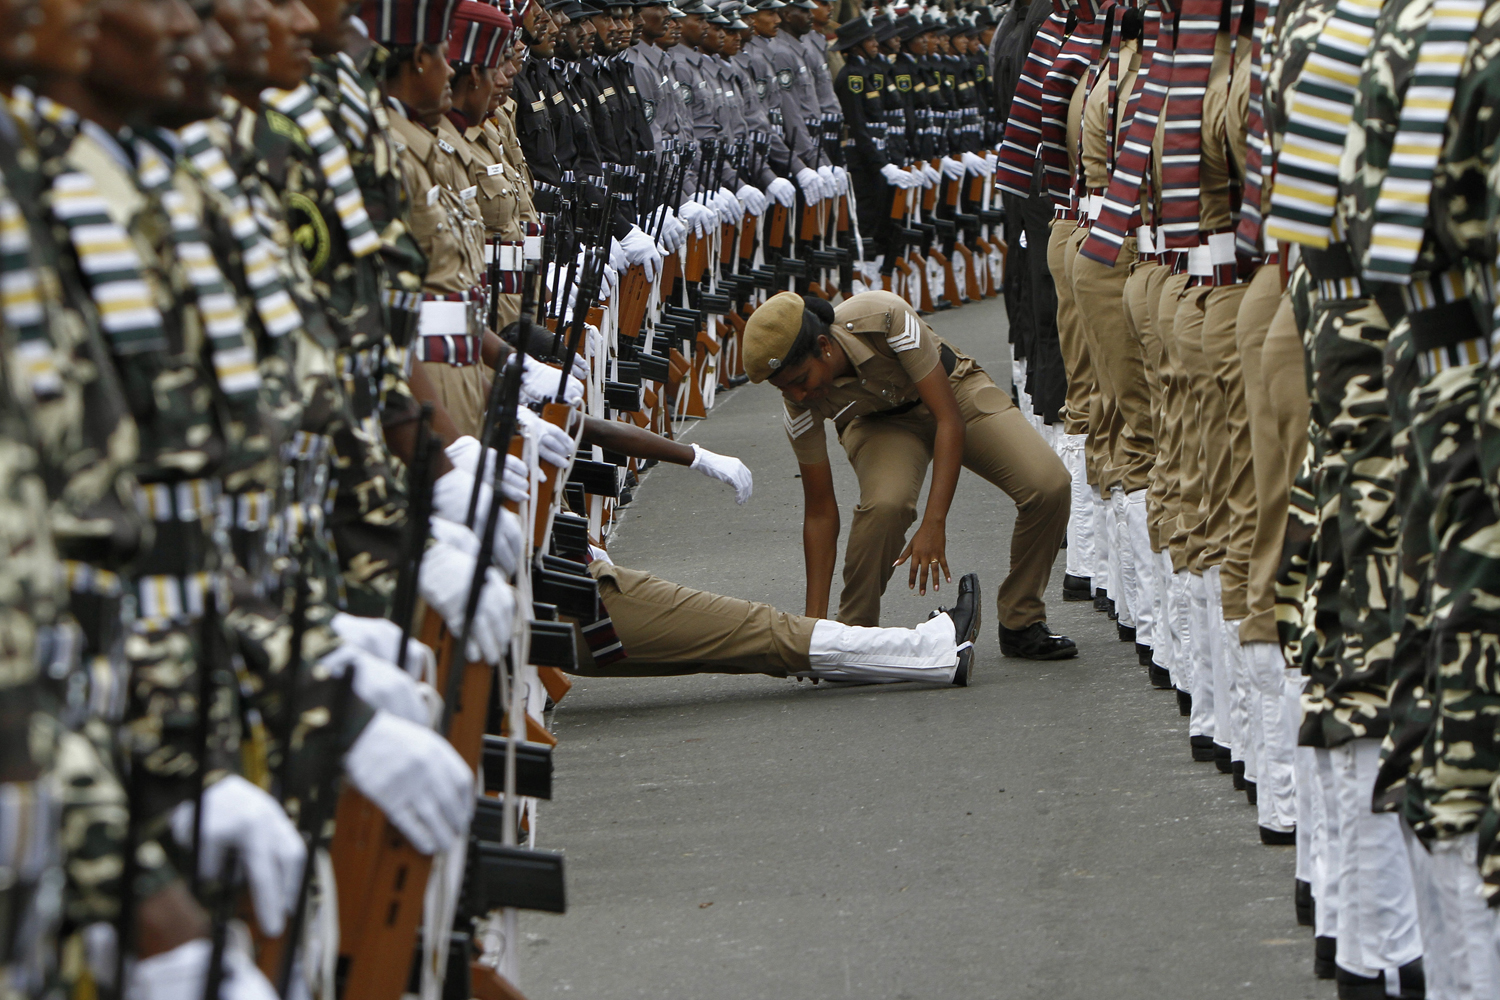 Aug. 13, 2013. An Indian policewoman helps her comrade who fainted during the full-dress rehearsal for India's Independence Day celebrations in the southern Indian city of Chennai.